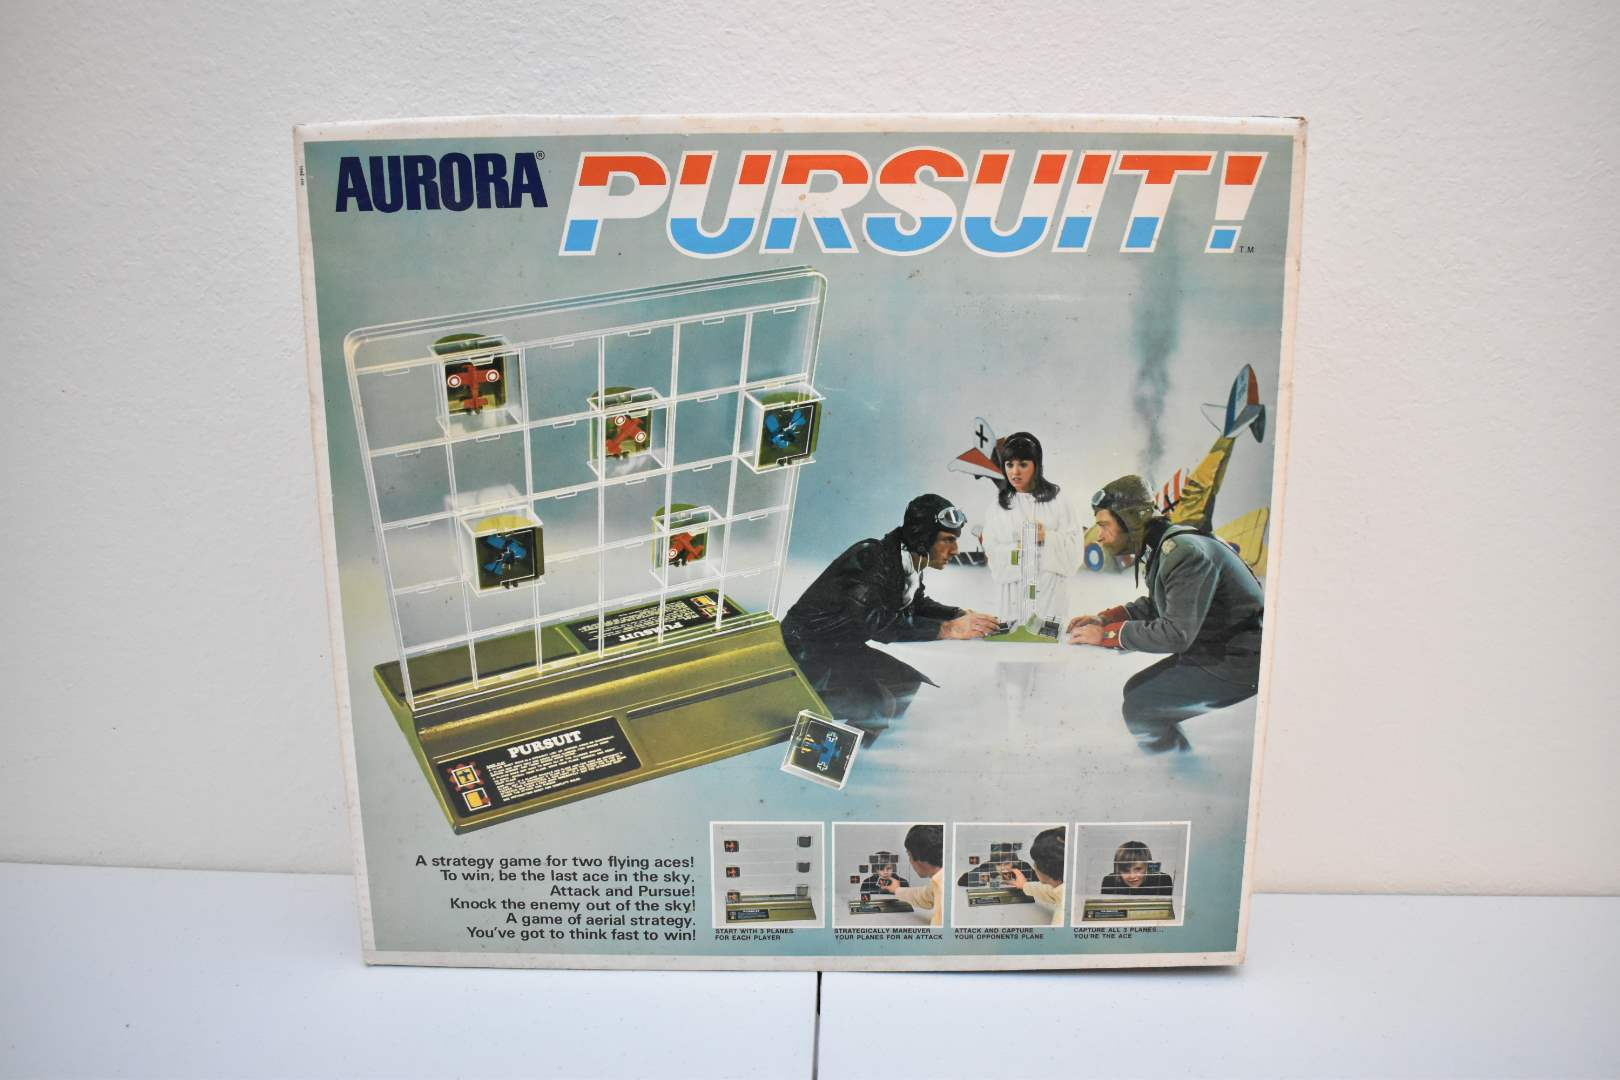 Auora Pursuit! Game from 1973